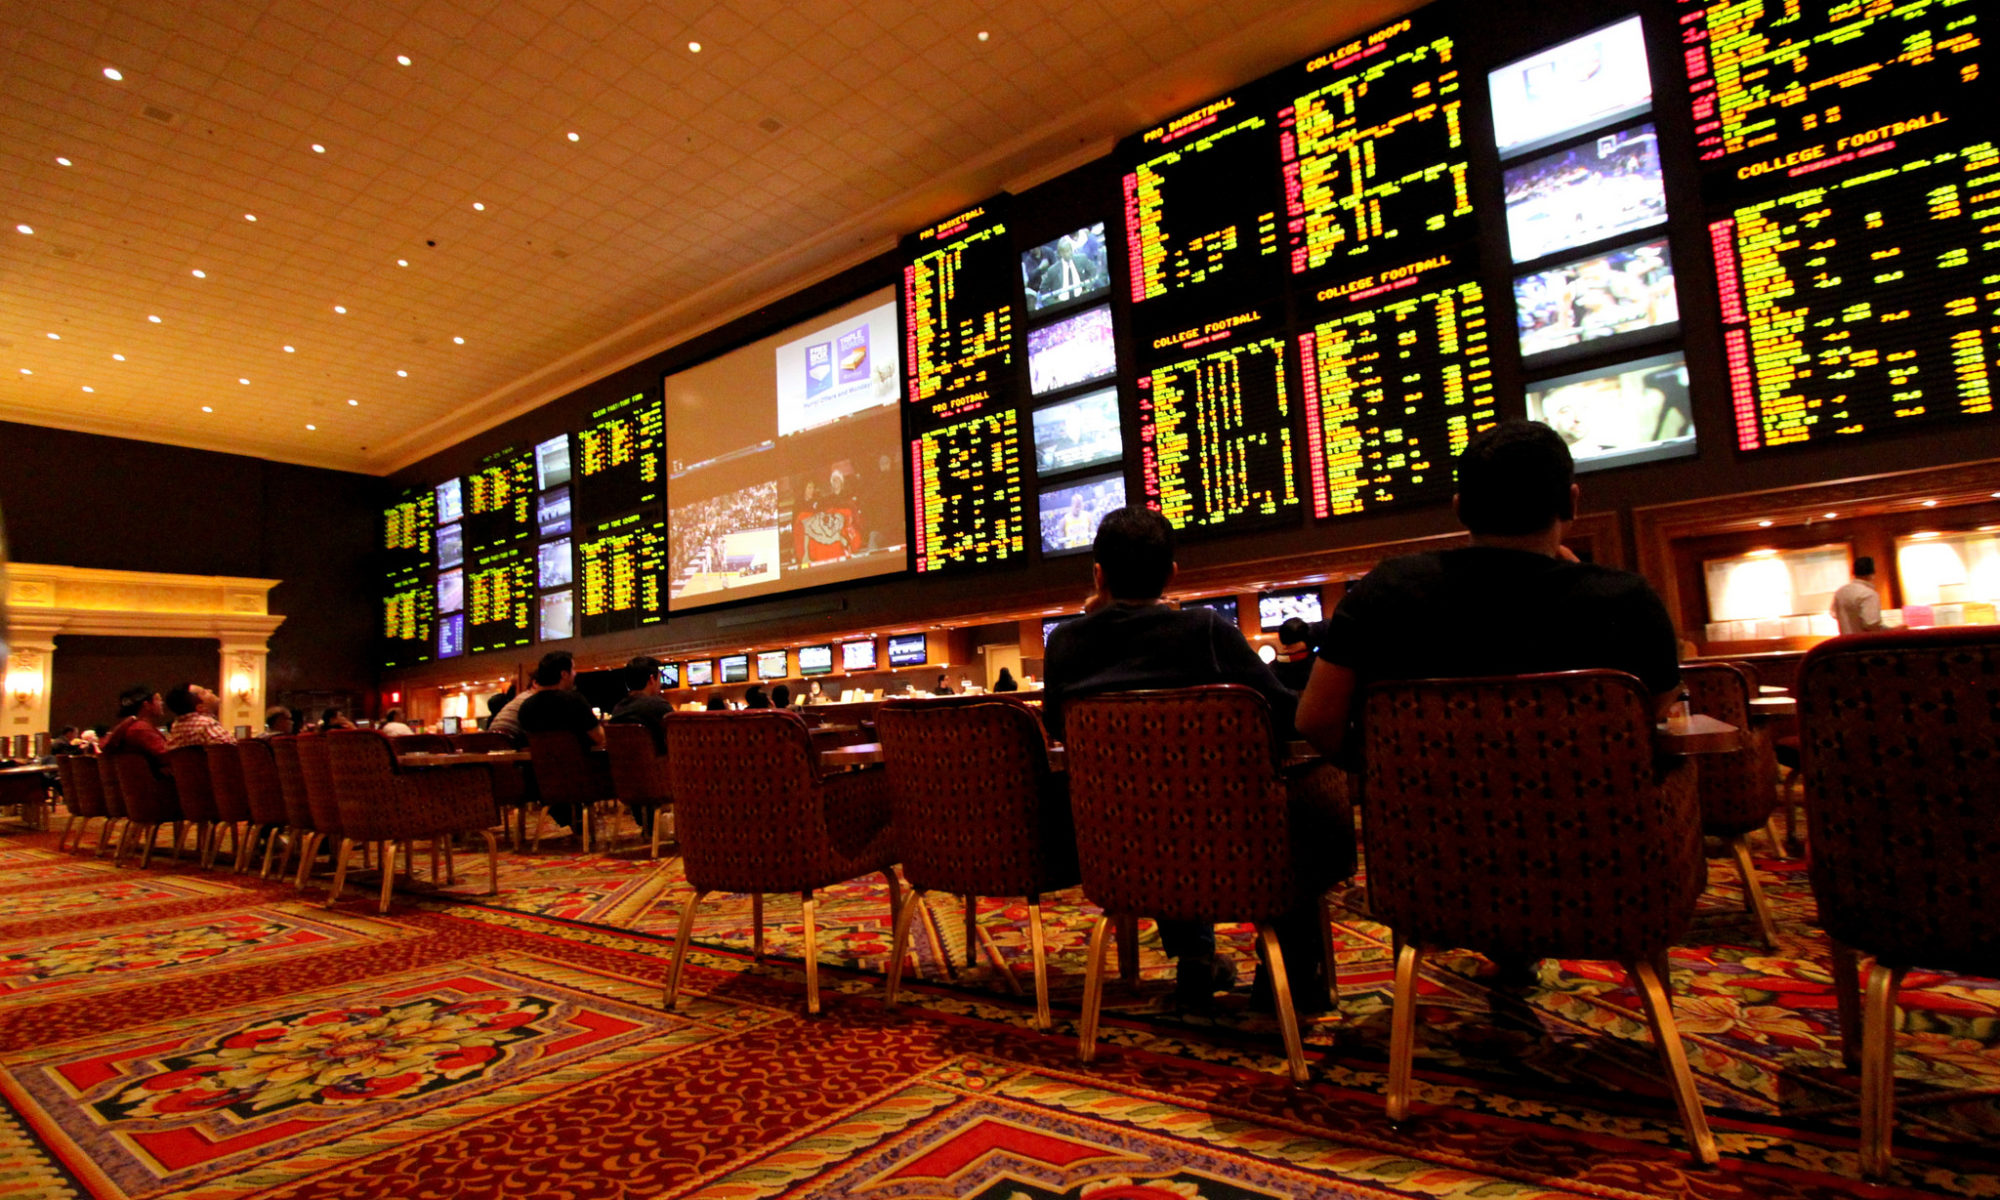 As floodgates open for sports betting, new fund aims to deepen research on gambling addiction